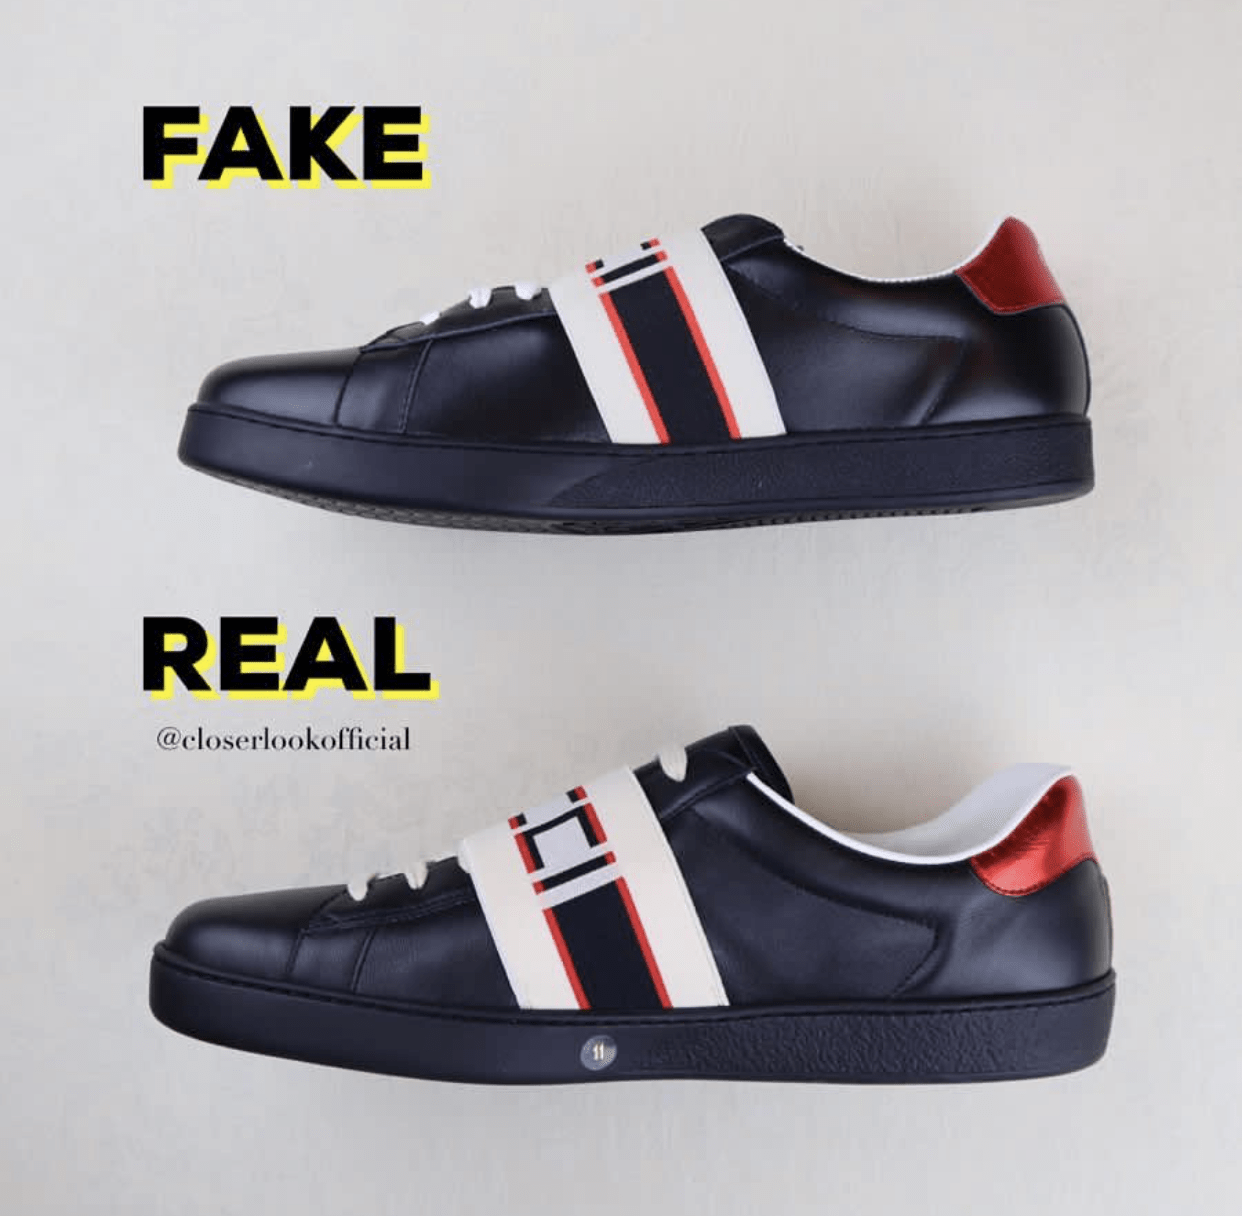 eeb551ce1 The shape from a side view of this sneakers reveals clearly their  differences. The fake pairs are shorter and as you can see the Gucci Logo  cannot be seen ...